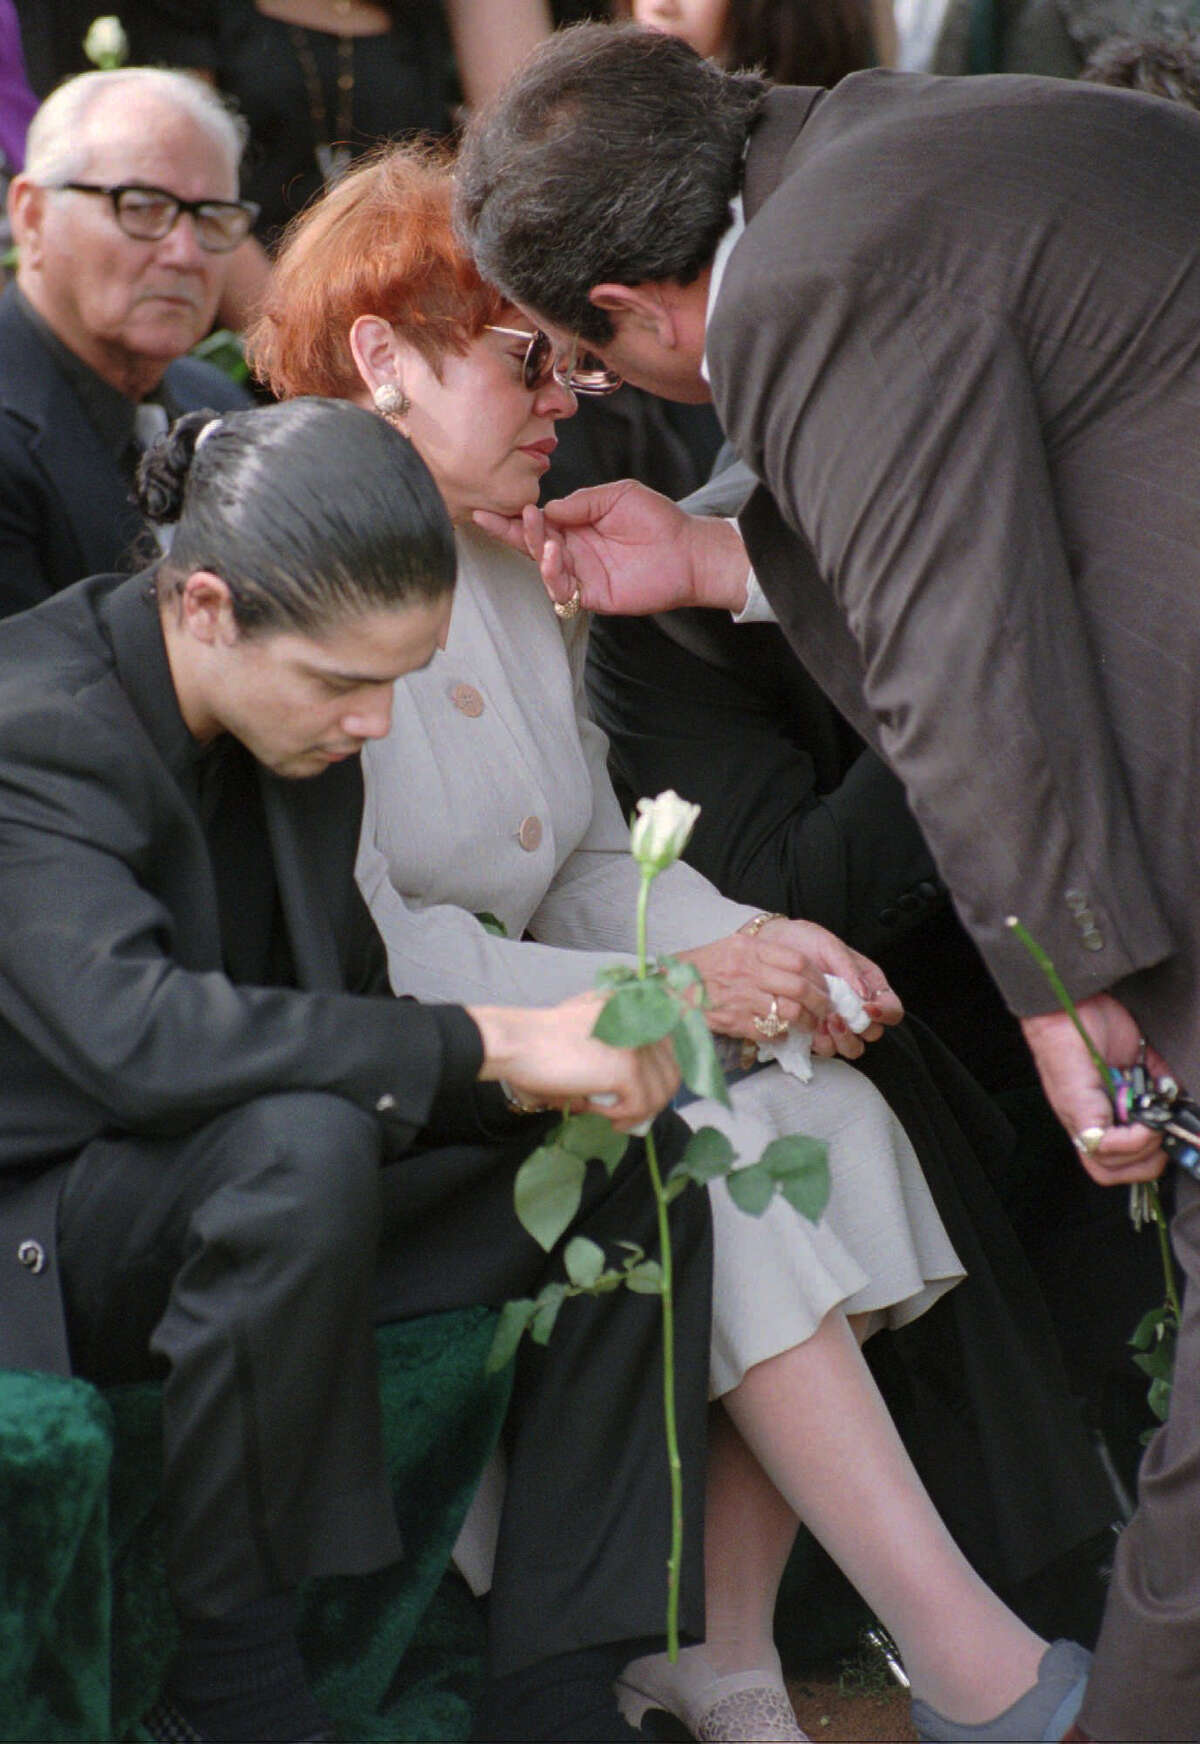 Father of slain Tejano music star, Abraham Quintanilla, right, consoles his wife, Marcella, as Chris Perez, husband of Selena, bows his head during funeral services Monday, April 3, 1995, in Corpus Christi, Texas. Selena was fatally shot Friday at a Corpus Christi motel. (AP Photo/David J. Phillip, Pool)